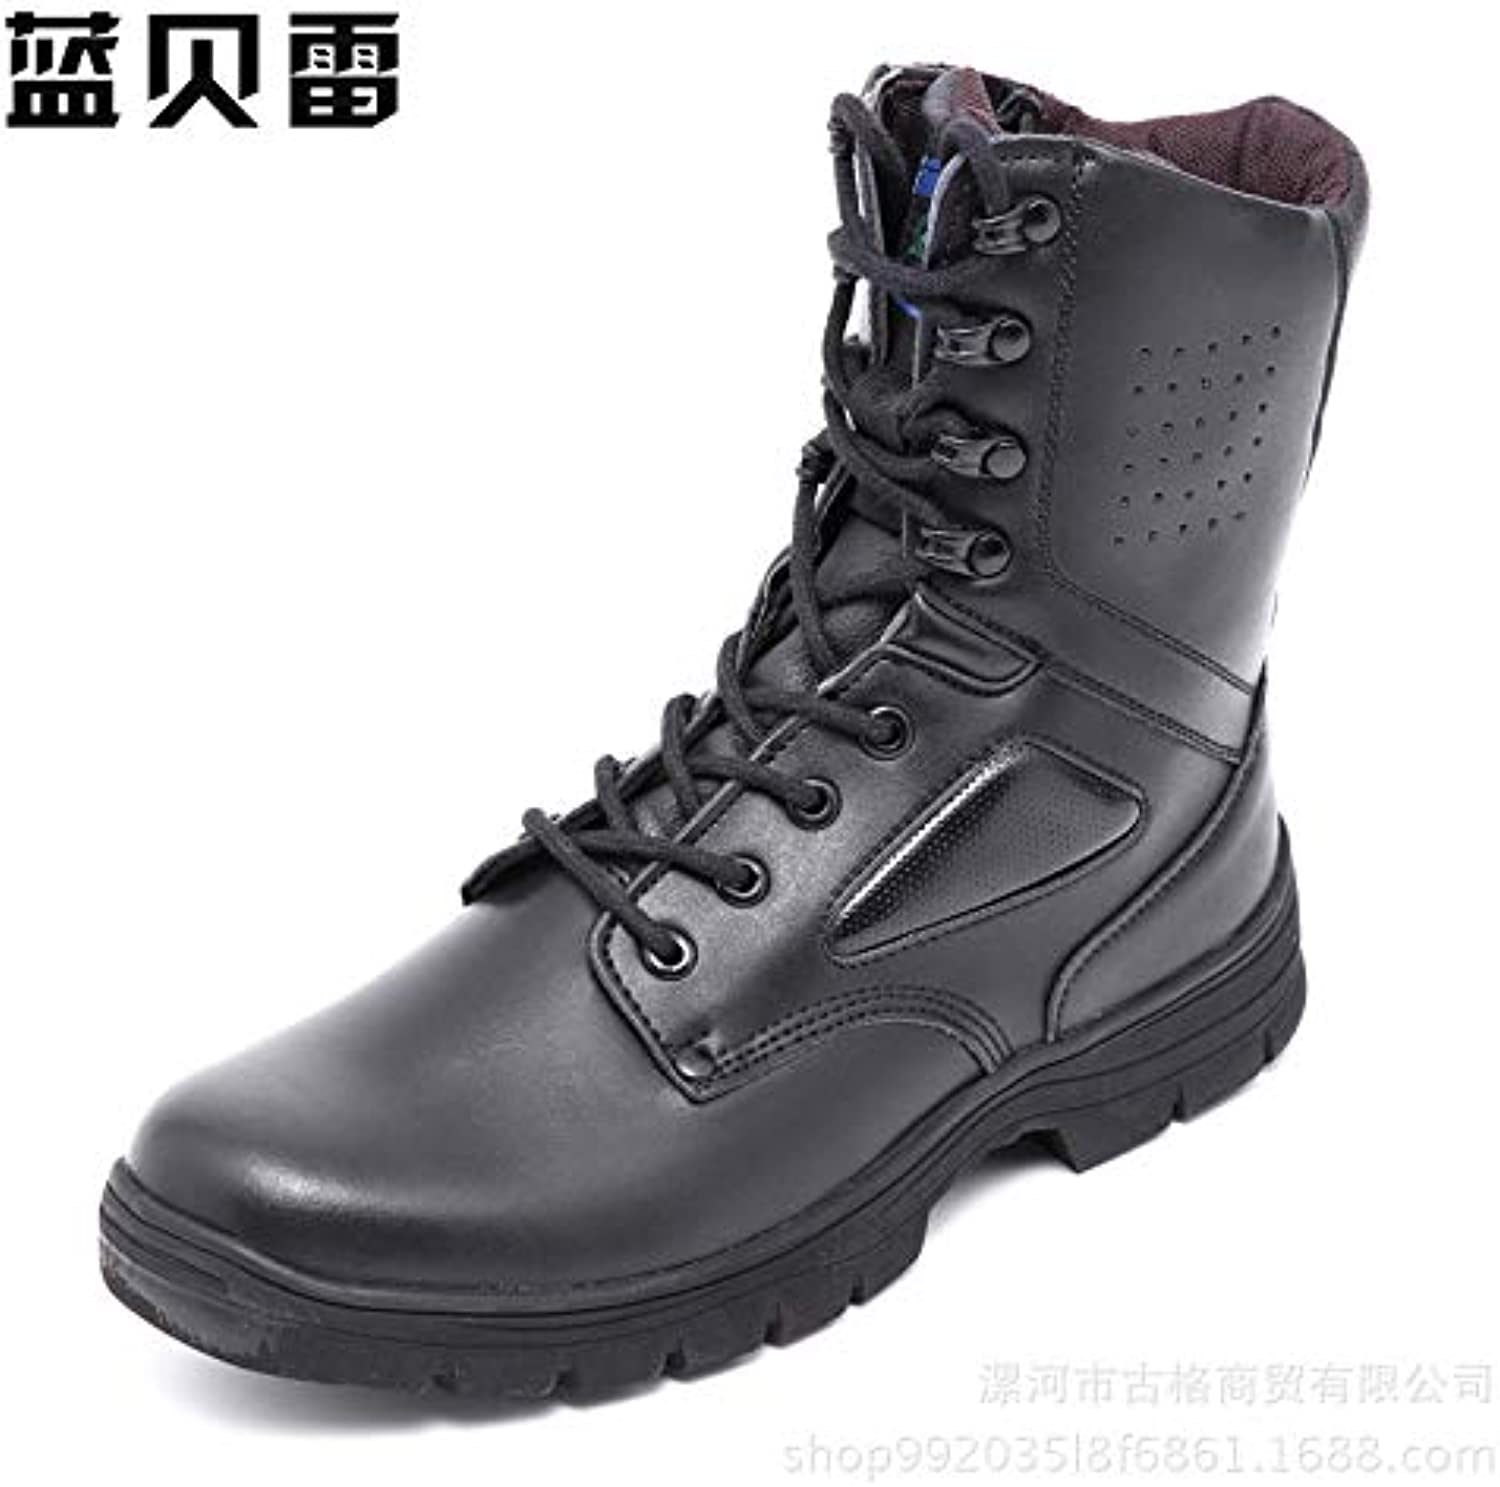 LOVDRAM Boots Men's Leather Men'S Boots Military Boots Wear Non Slip Rubber Sole Outdoor Thickening Tube Martin Boots Men